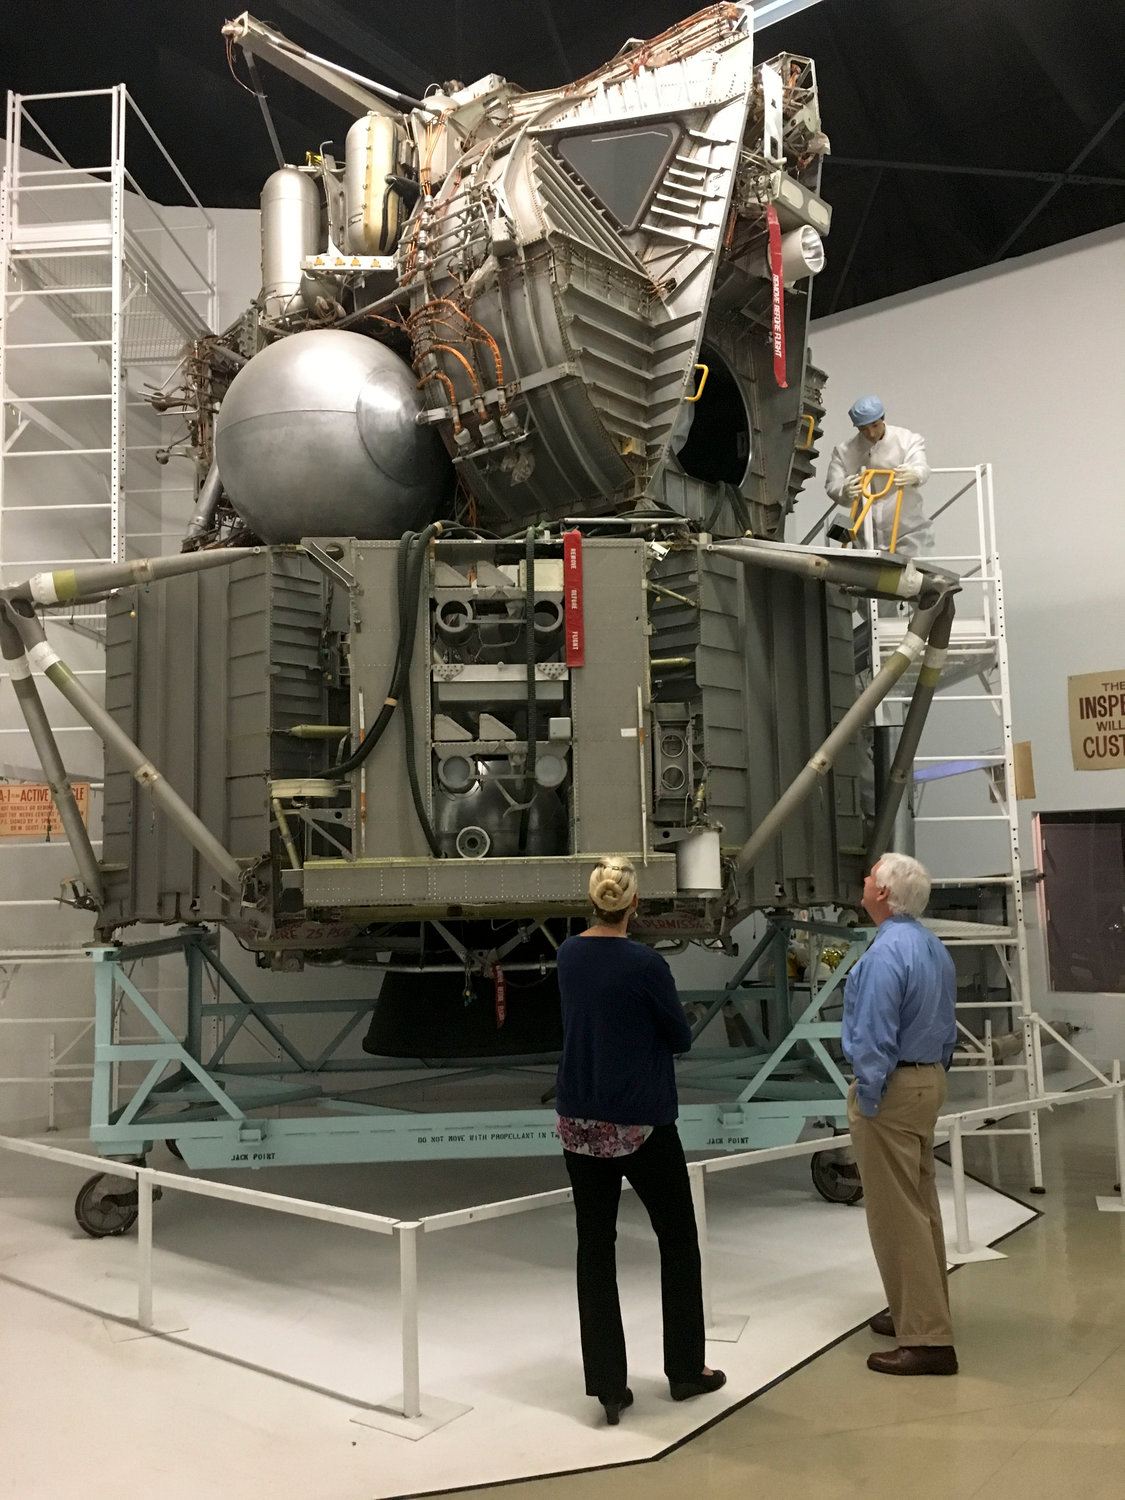 Jennifer Baxmeyer, executive director of the Cradle of Aviation Museum, center, and museum President Andrew Parton with the test lunar module on display.